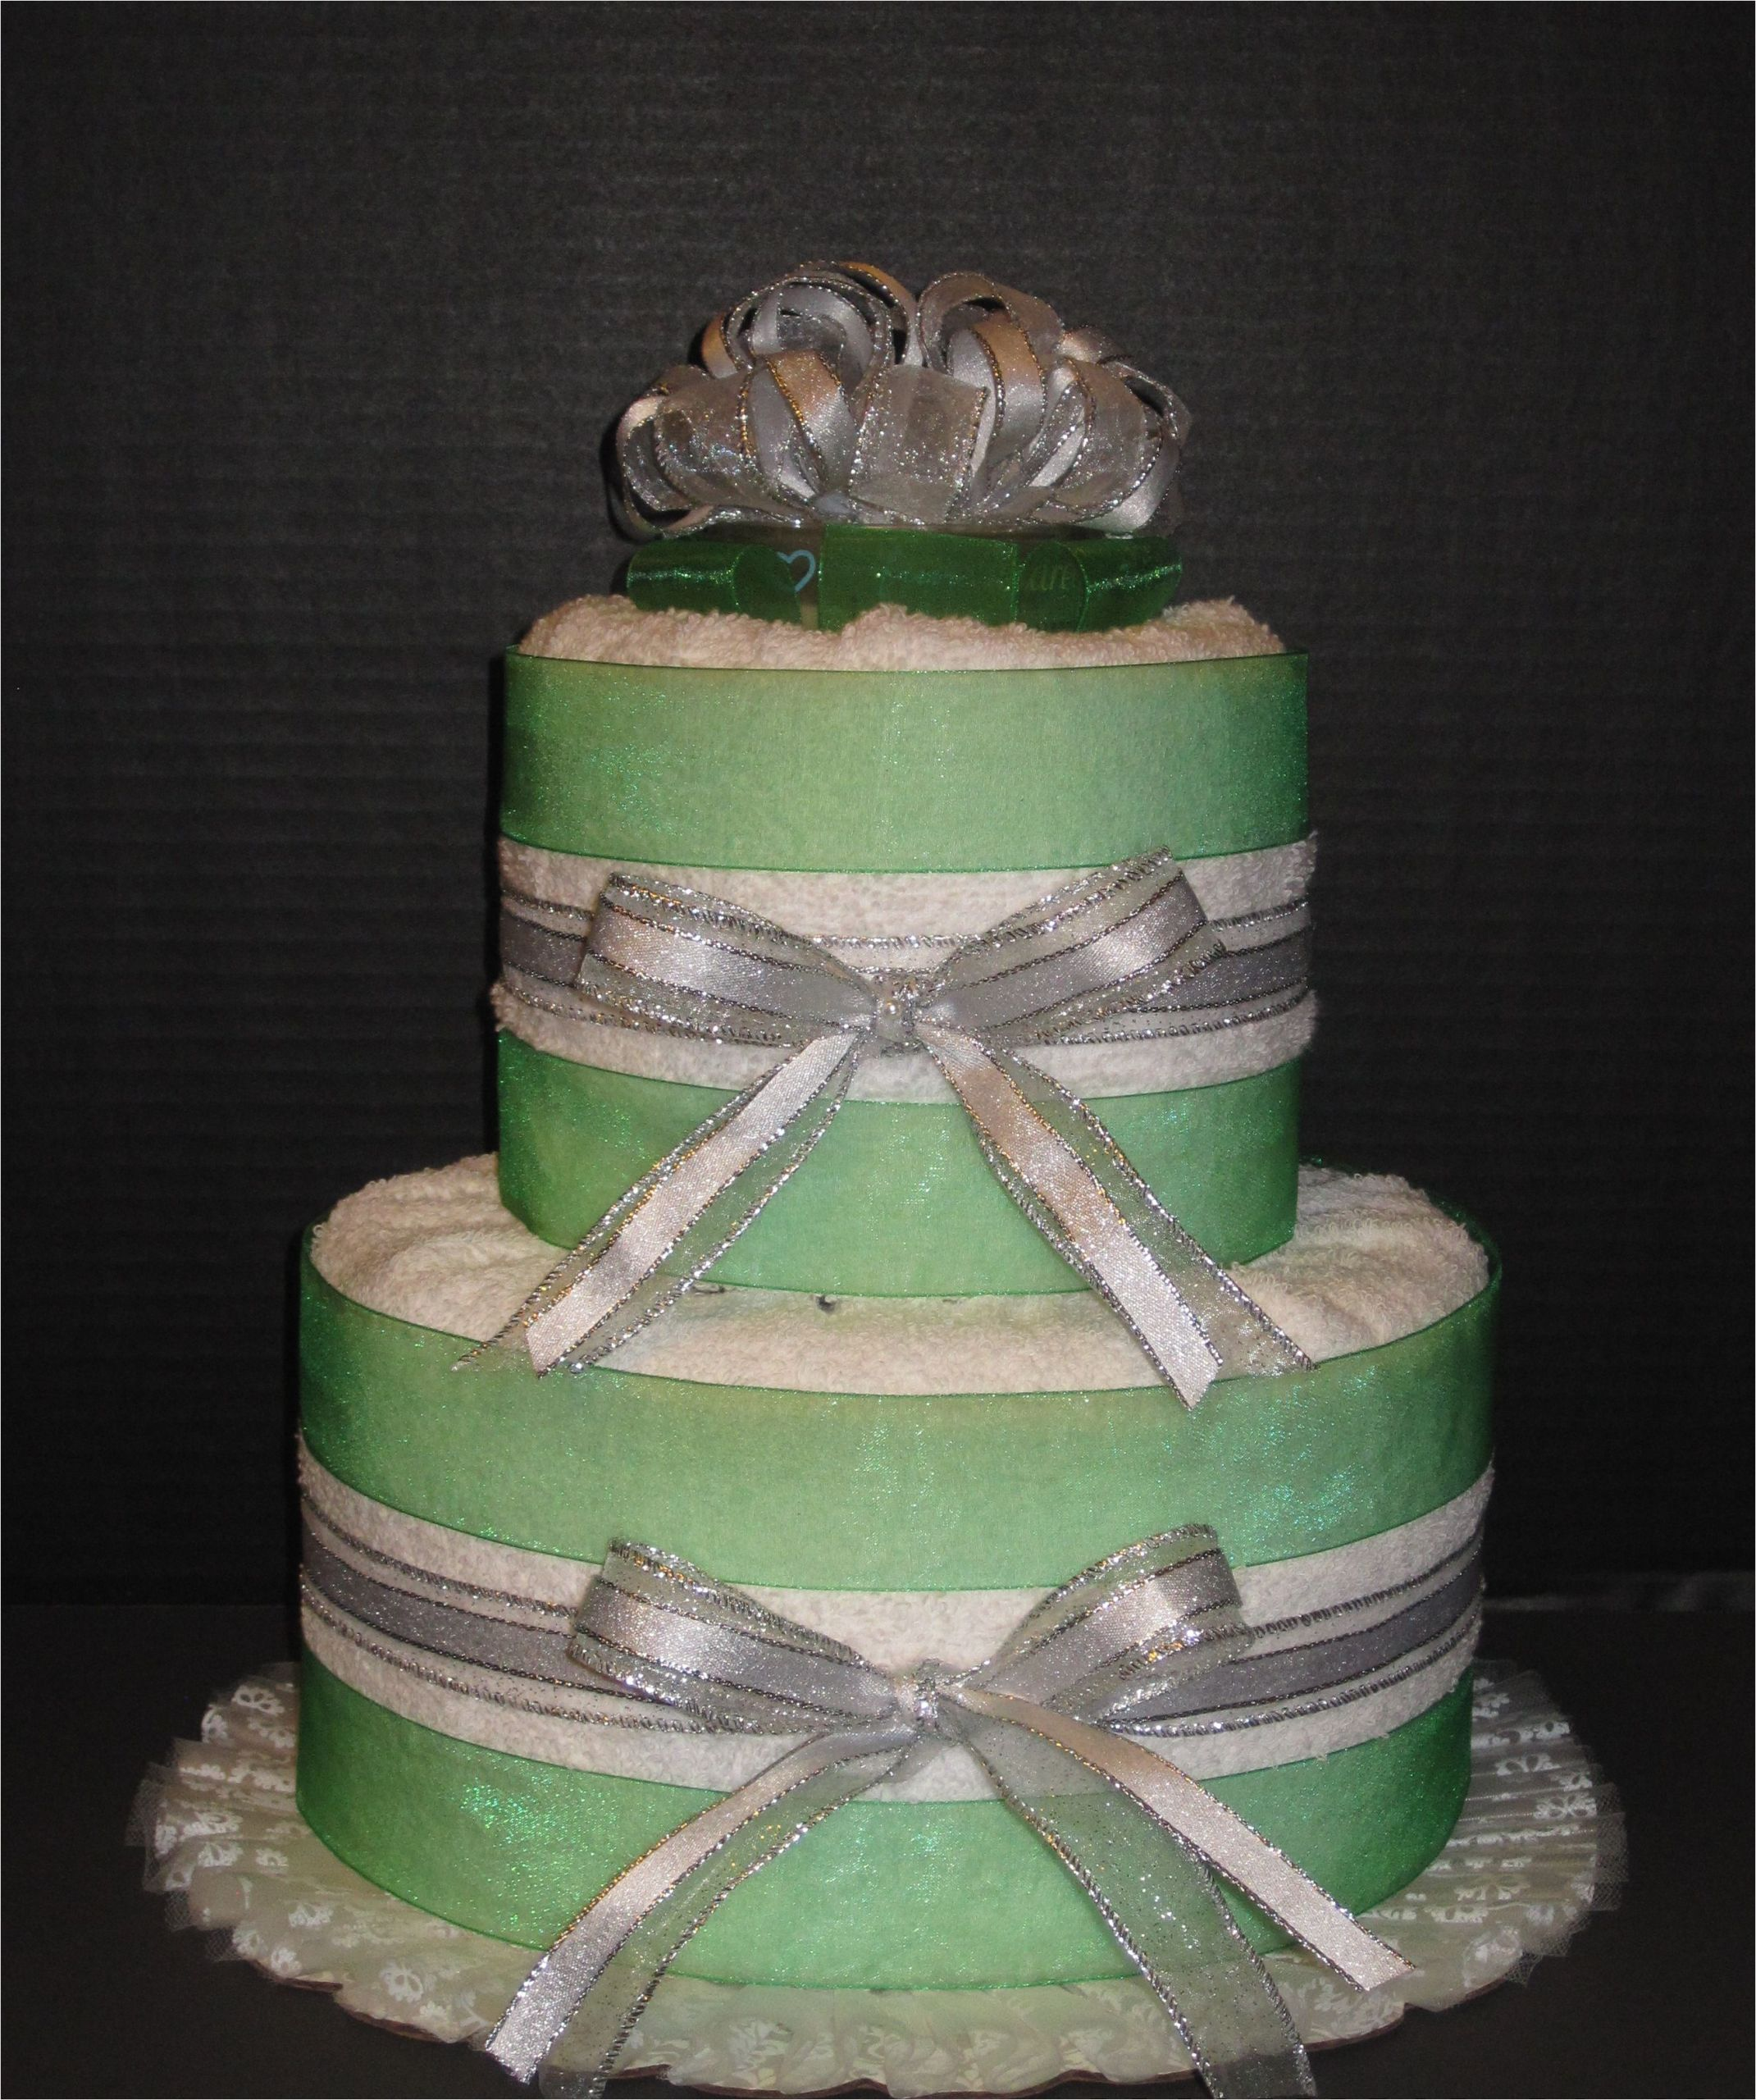 What are Bathtubs Made Out Of 2 Layer towel Cake for Bridal Shower Made Out Of Bath